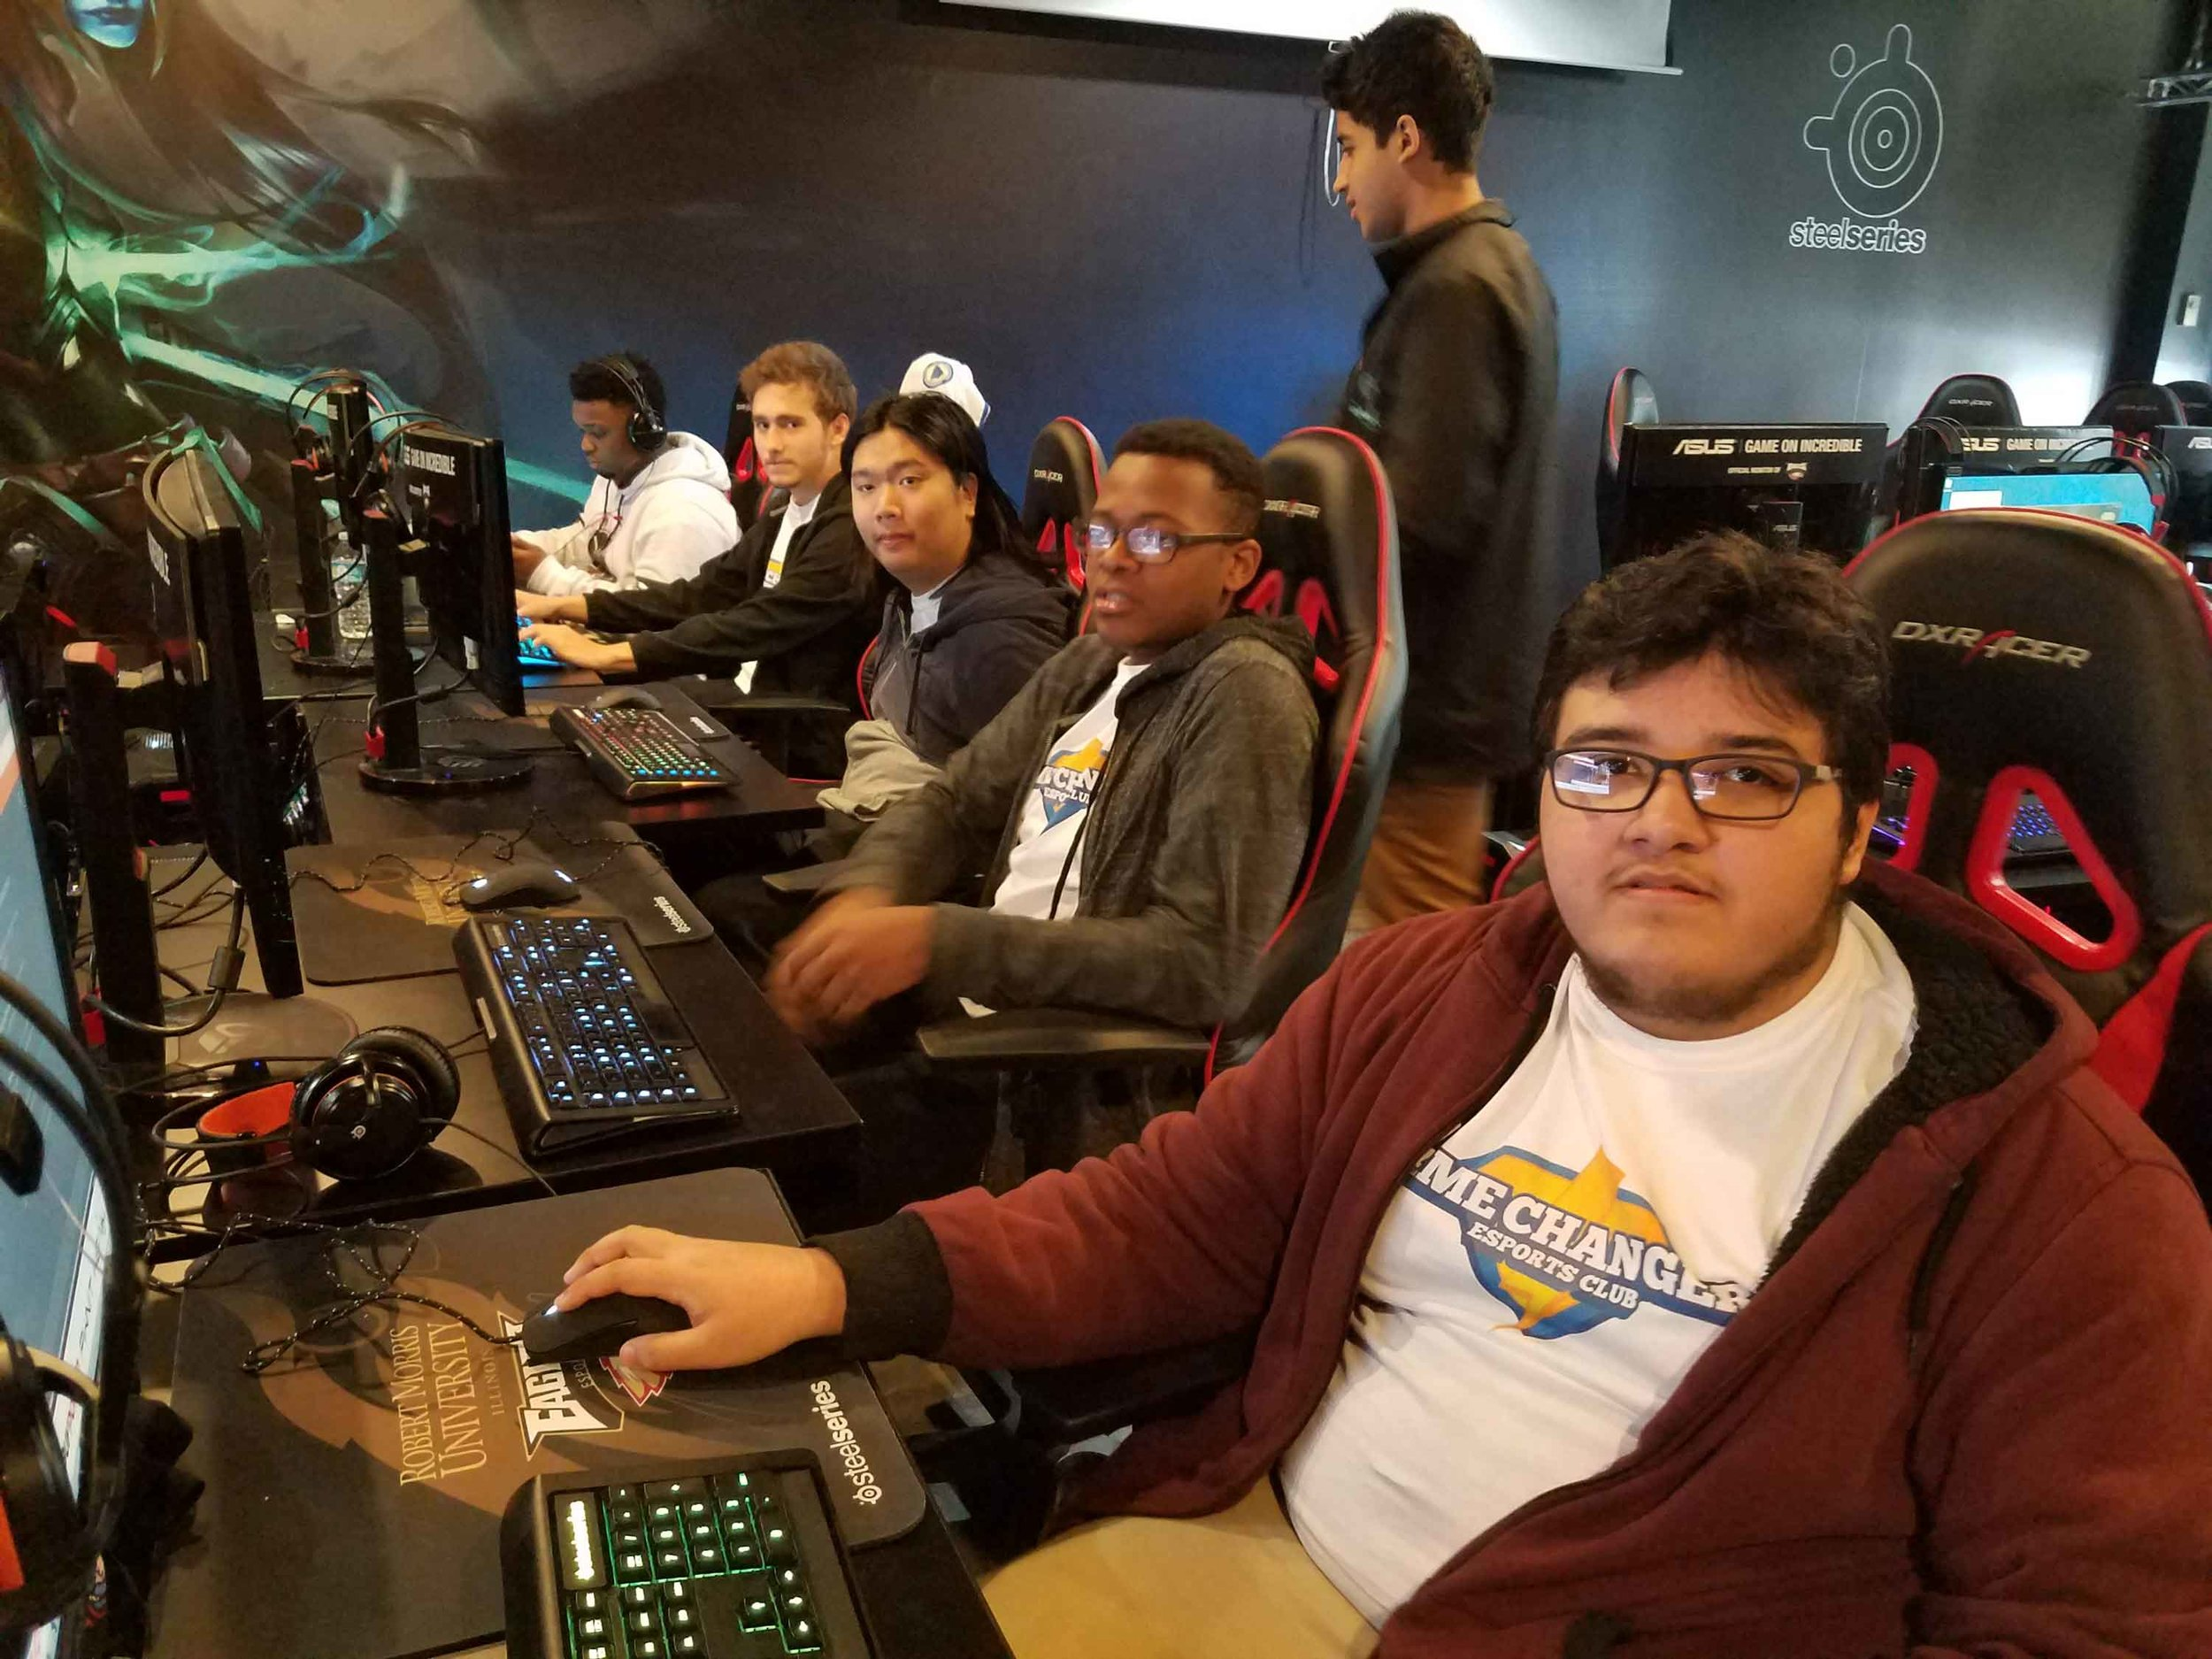 GameChangers - GameChangers provide technology and training to bridge the digital divide, alter outcomes and create life changing experiences through participation in esports.